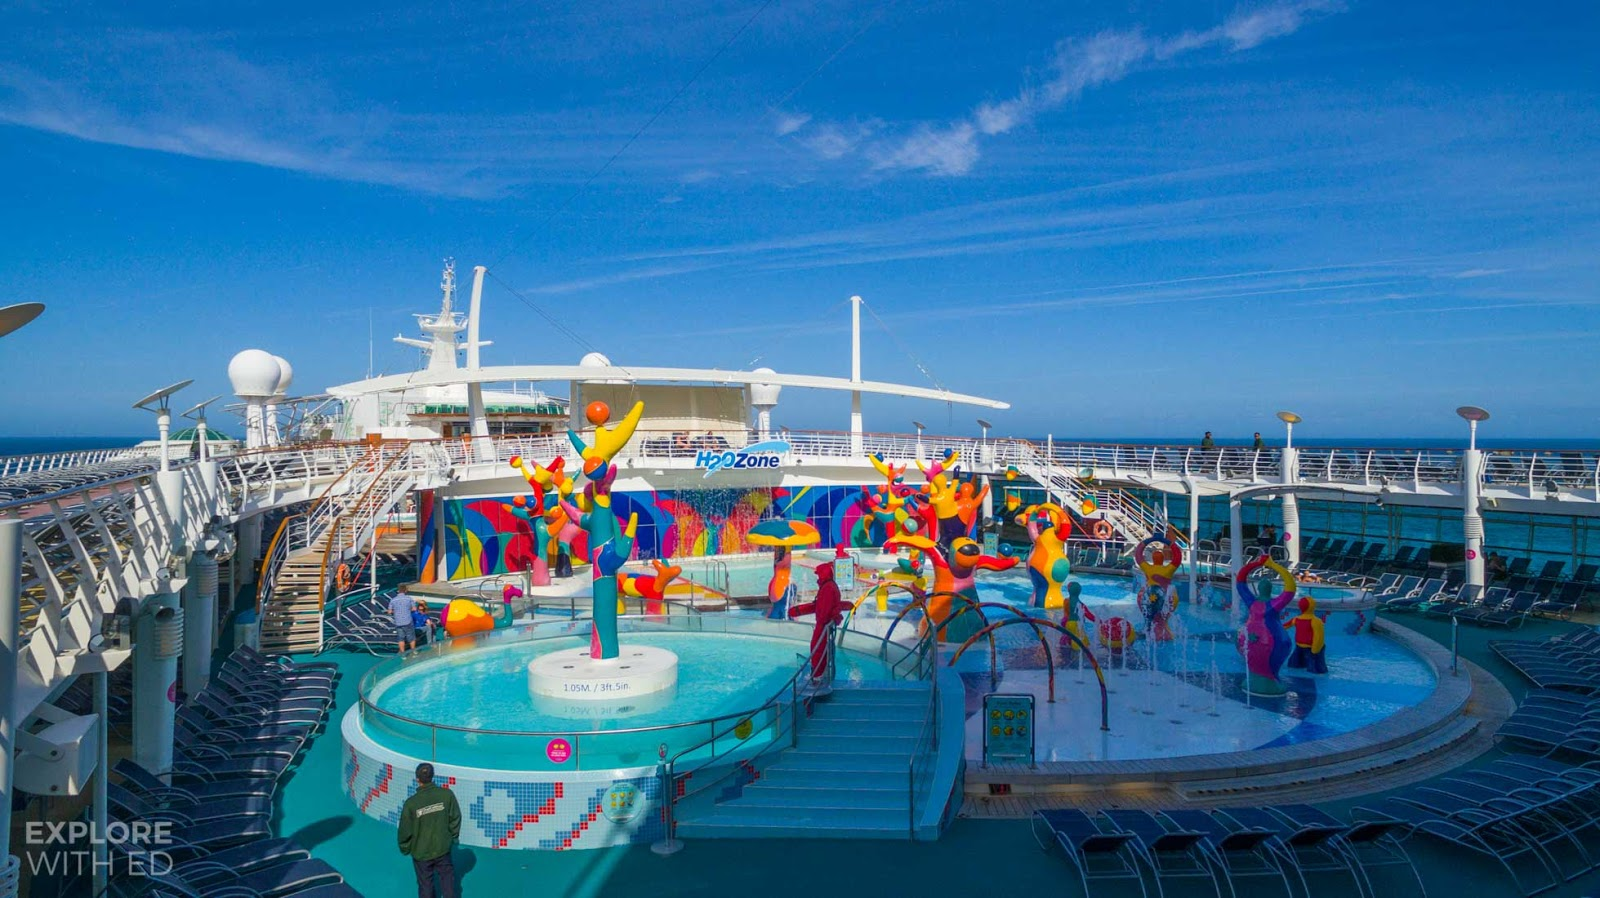 The H2O Zone onboard Independence of the Seas